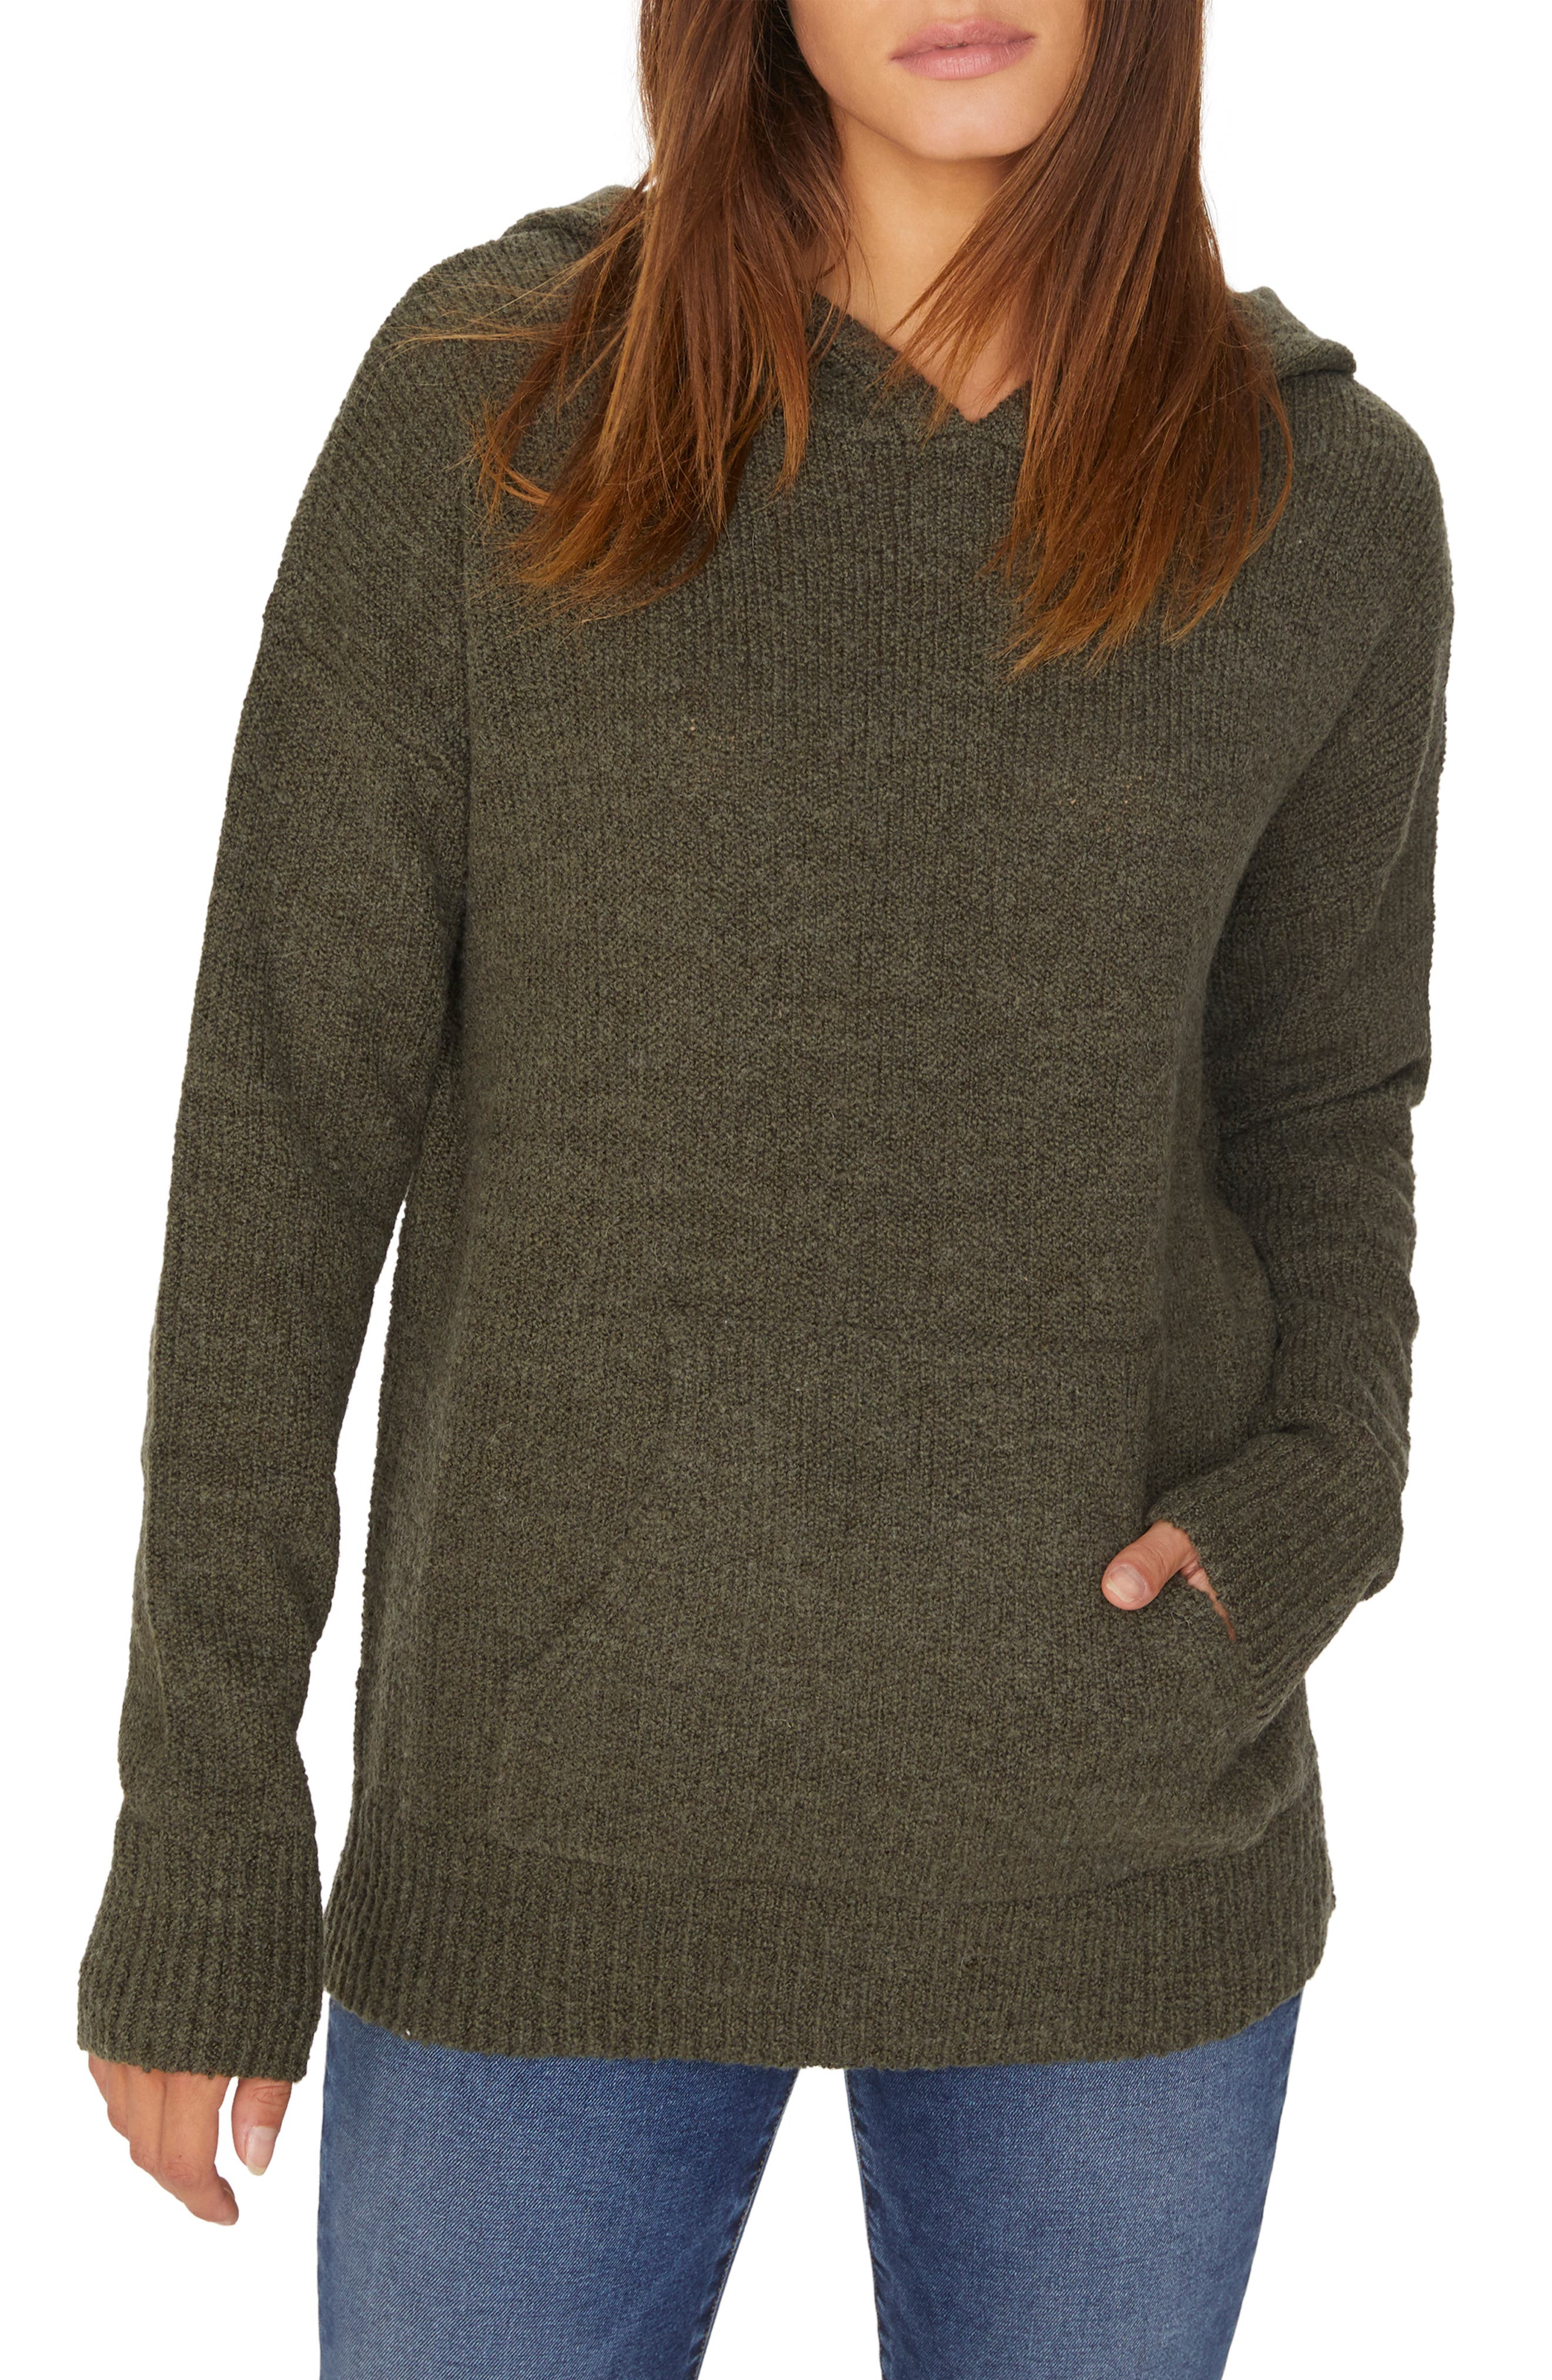 Sunday Morning Wool Blend Sweater Hoodie,                         Main,                         color, HEATHER PROSPERITY GREEN